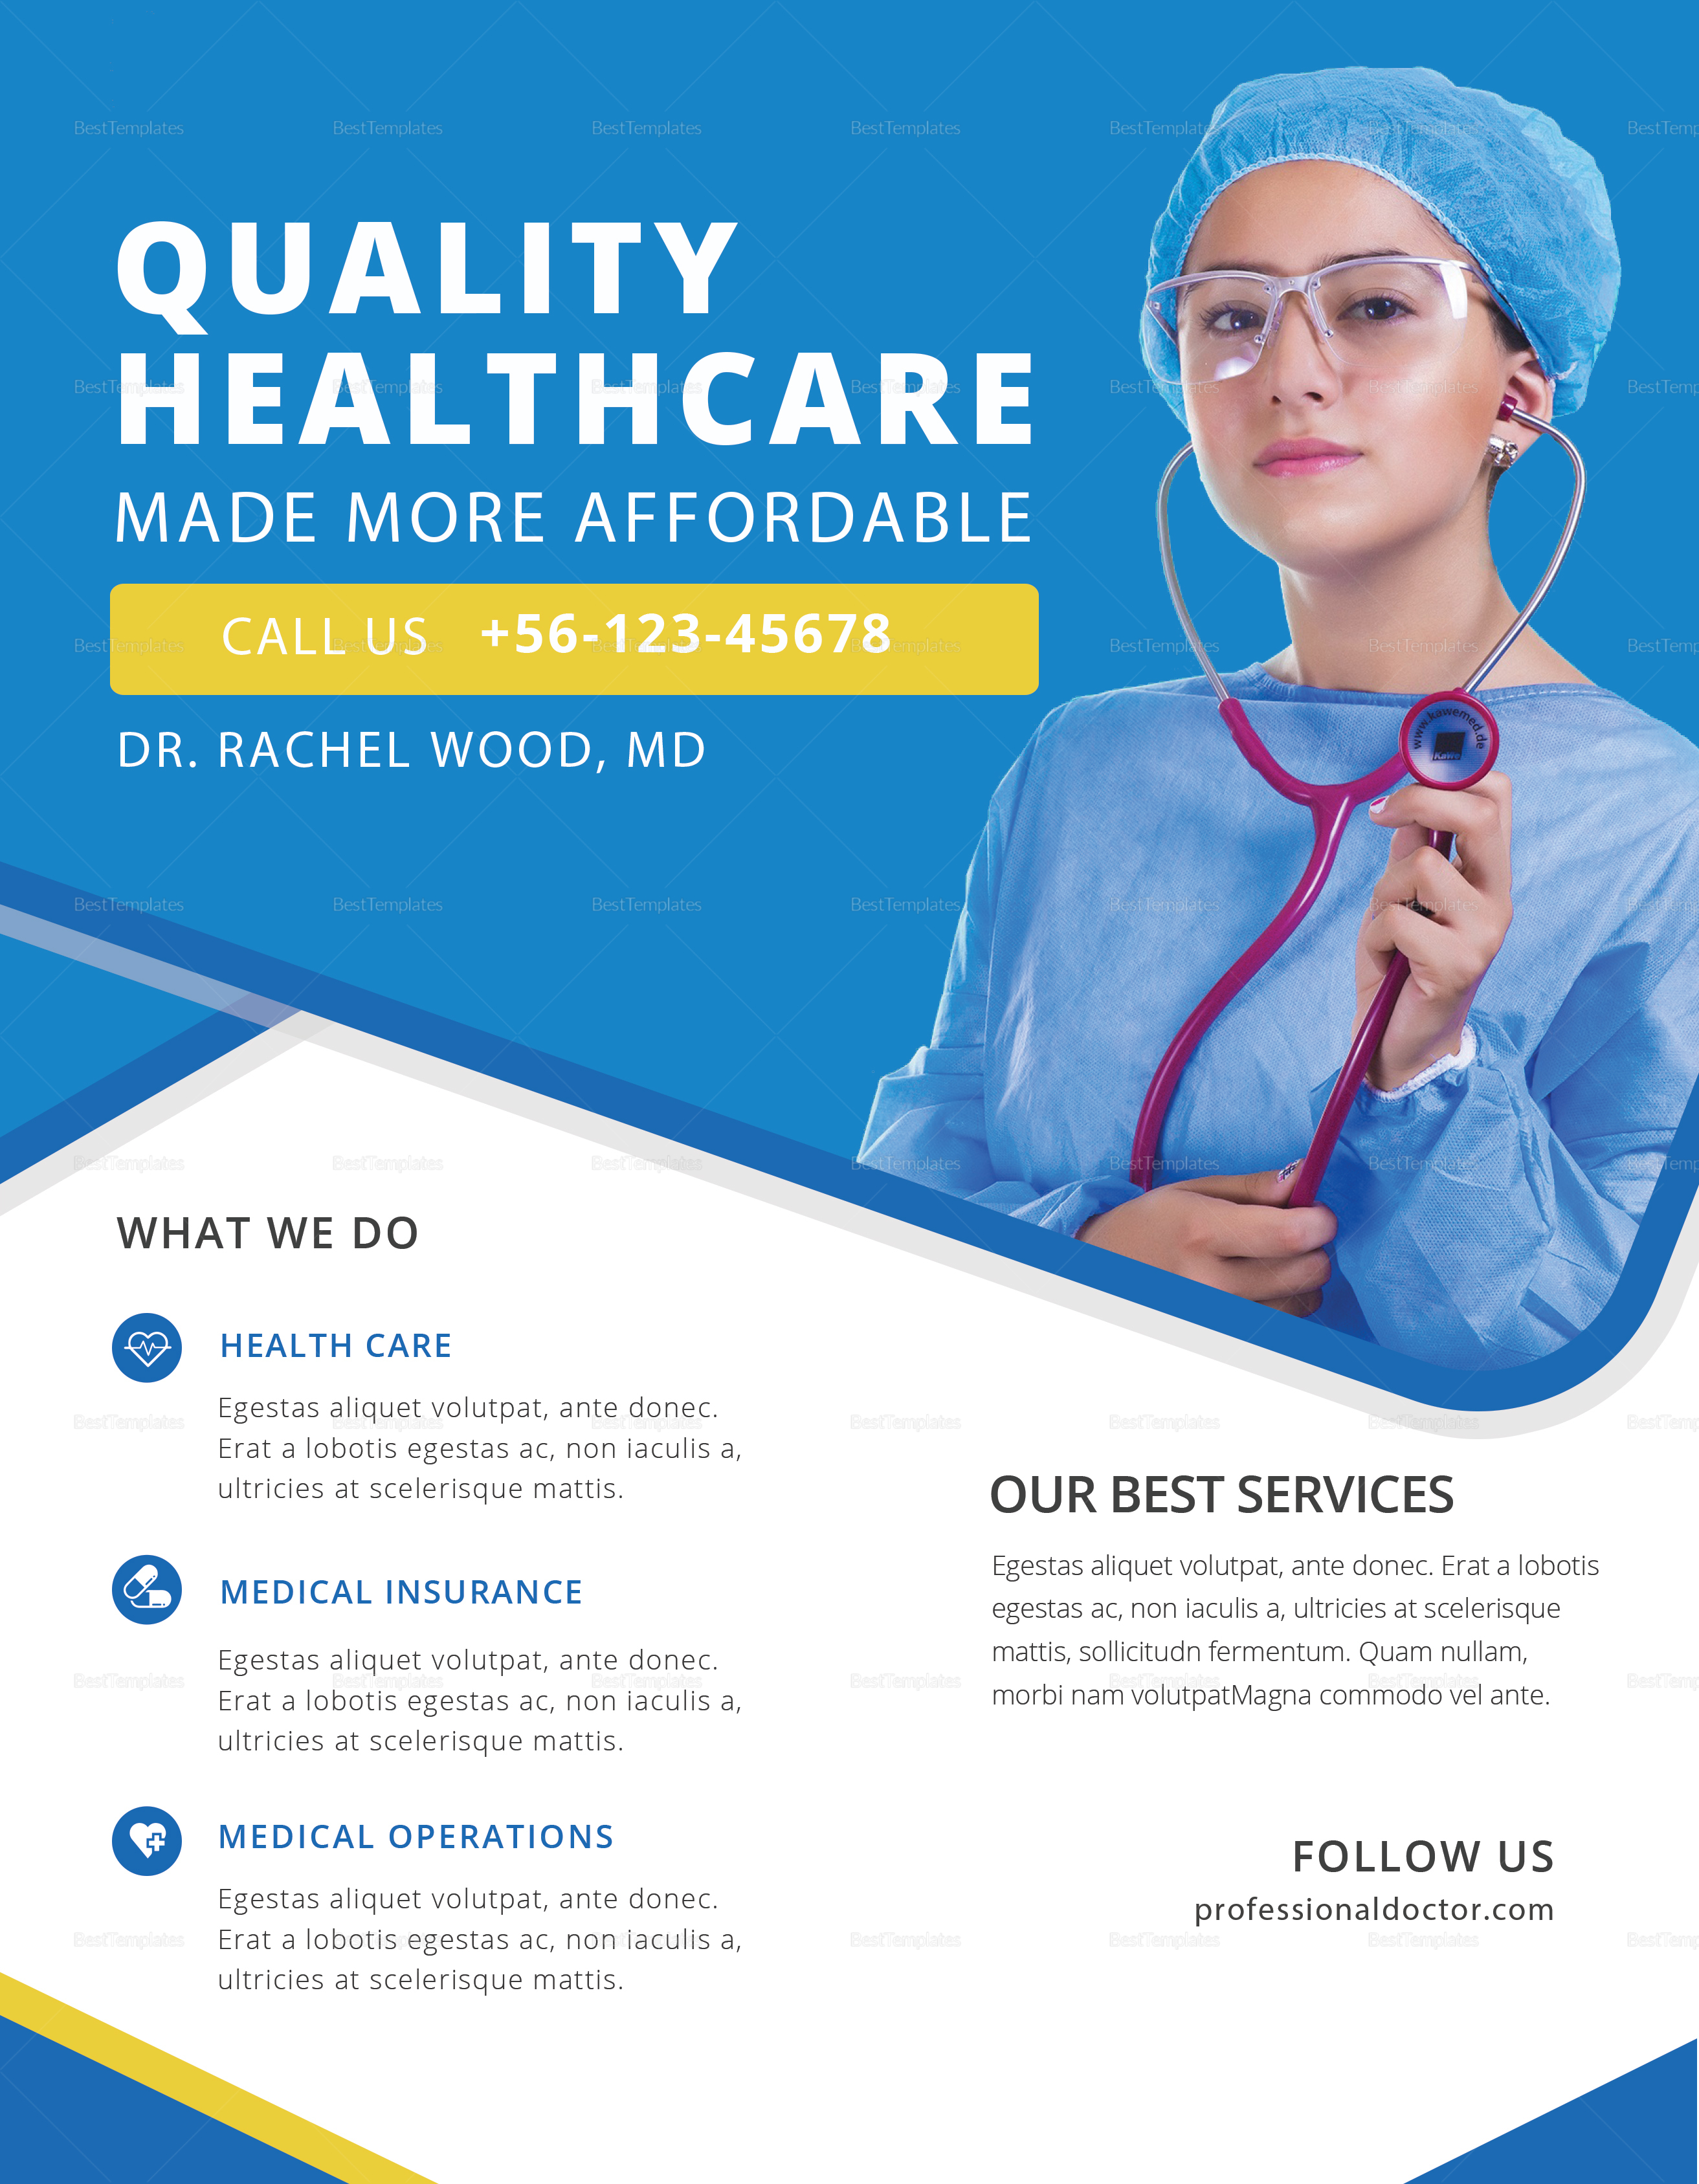 Professional Doctor Health Flyer Design Template In Psd Word